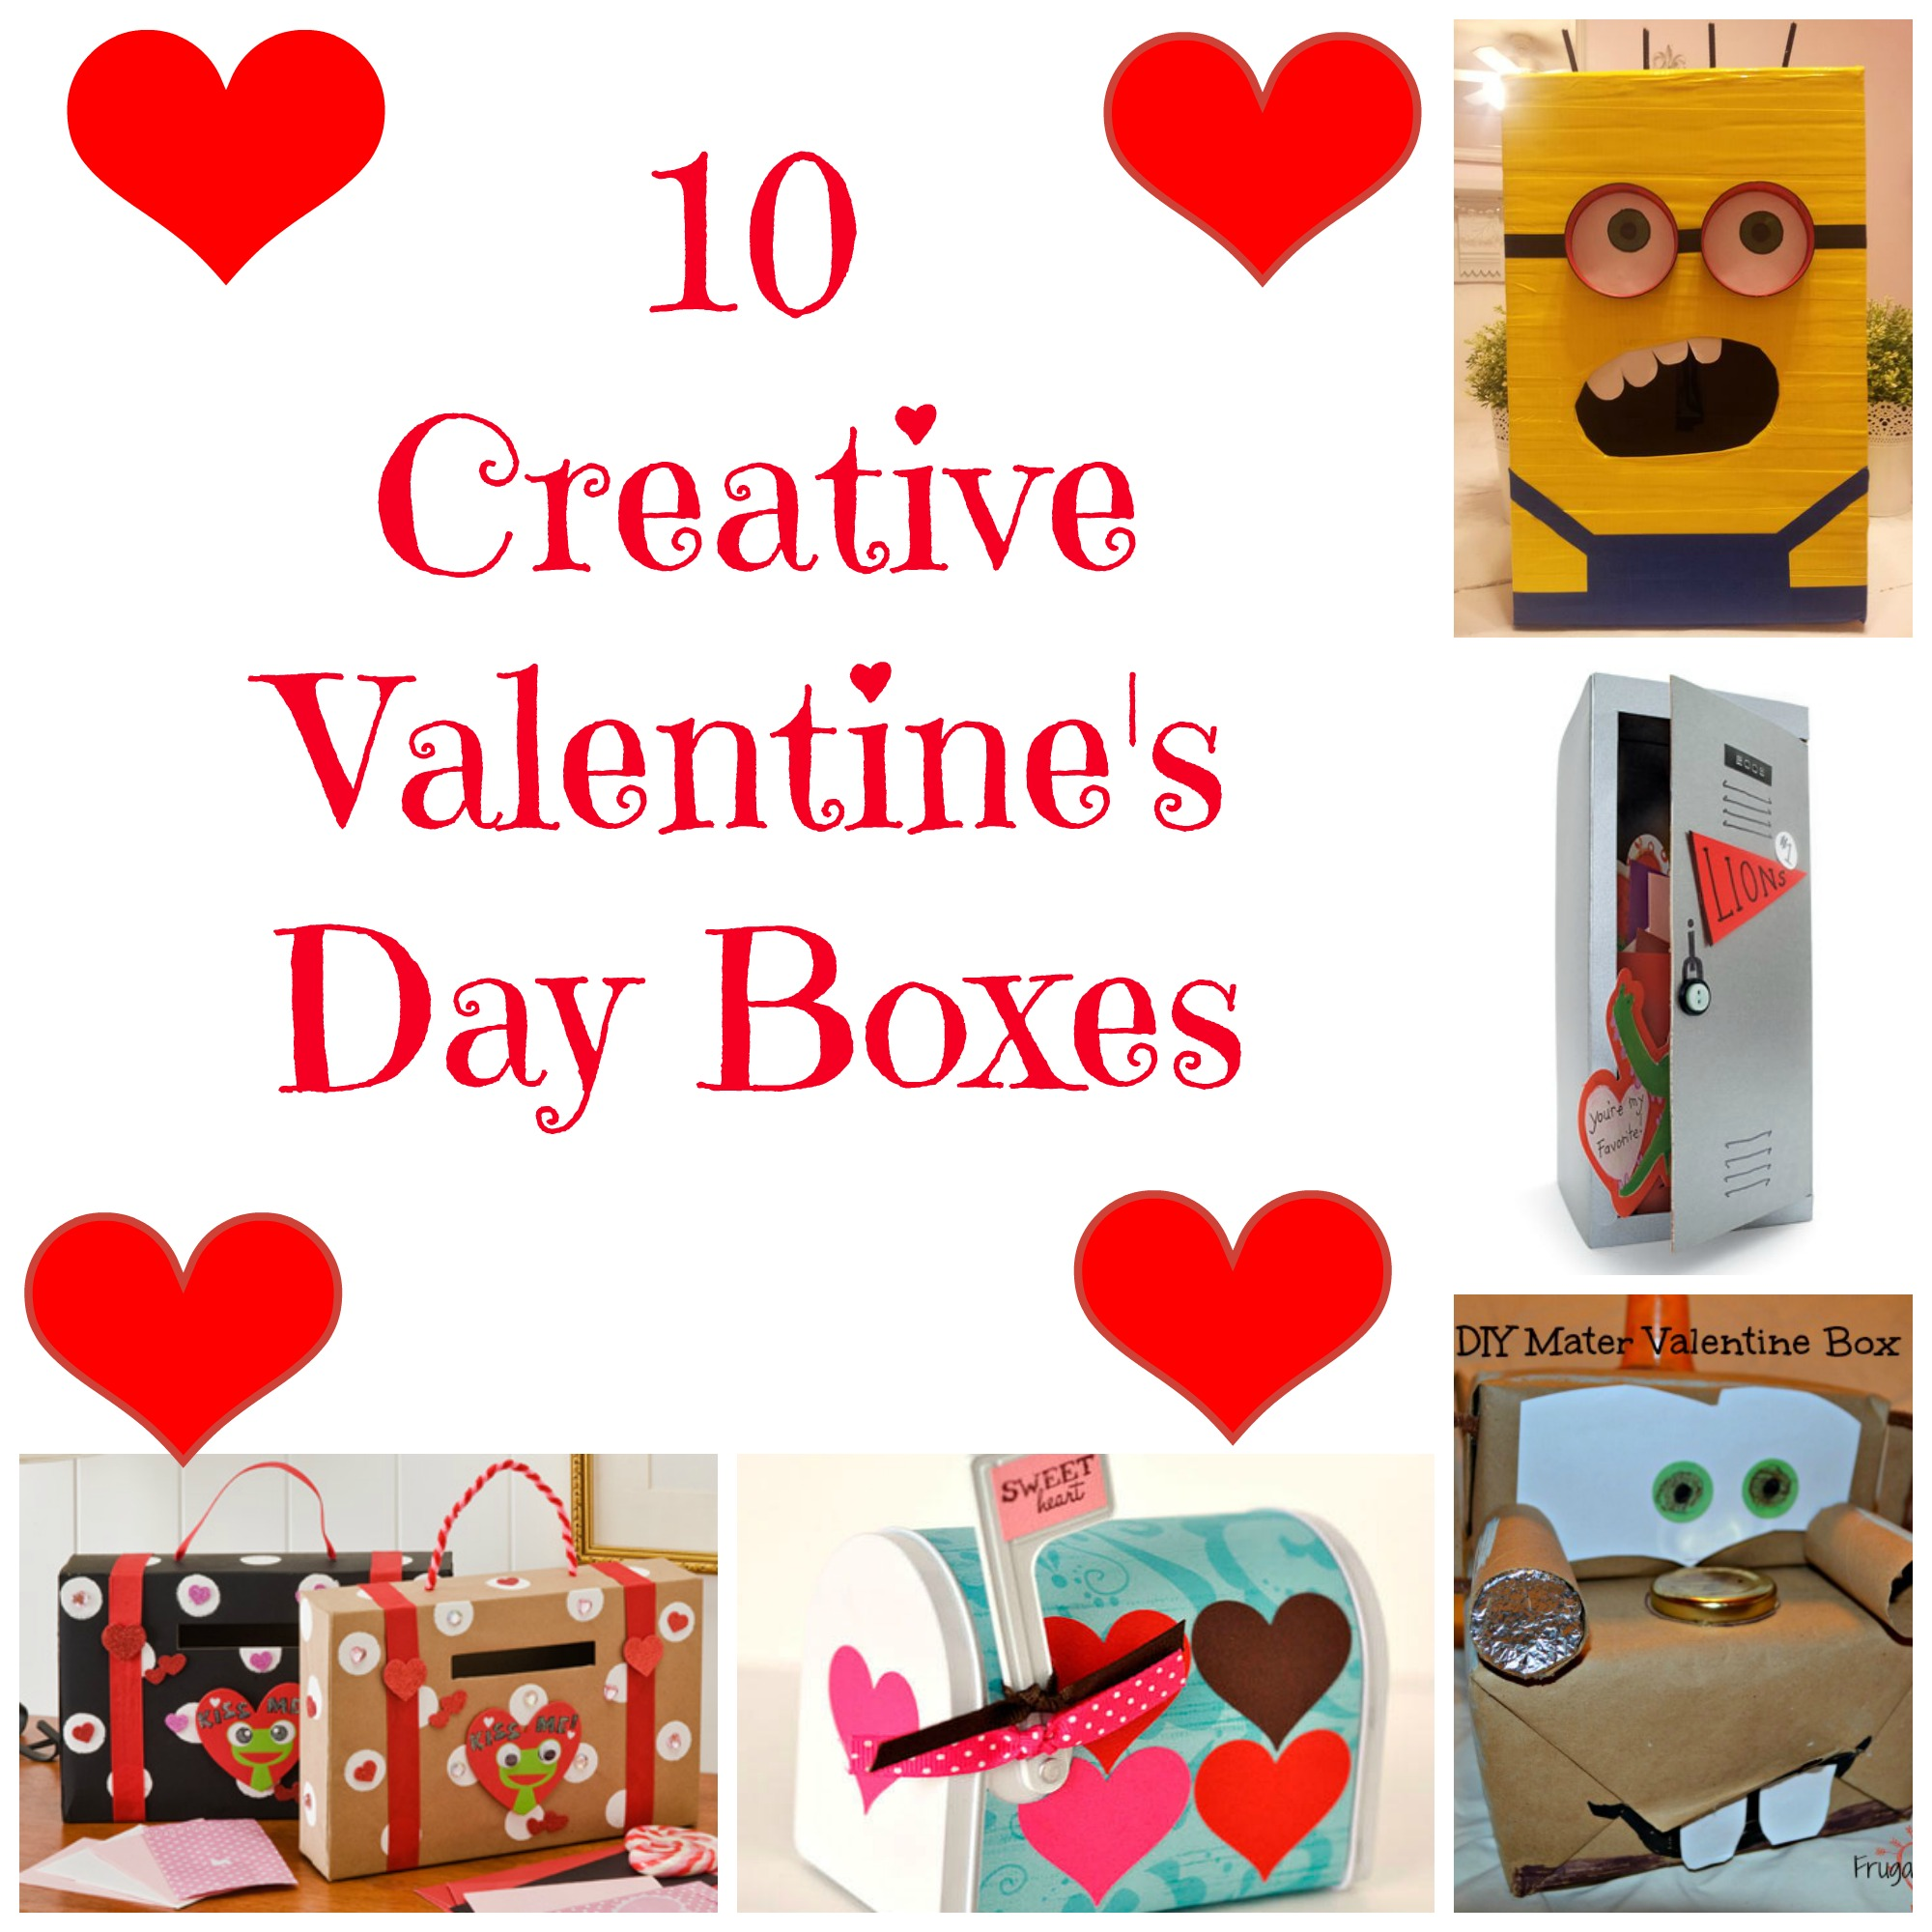 What Are Your Favorite Creative Valentineu0027s Day Box Ideas?